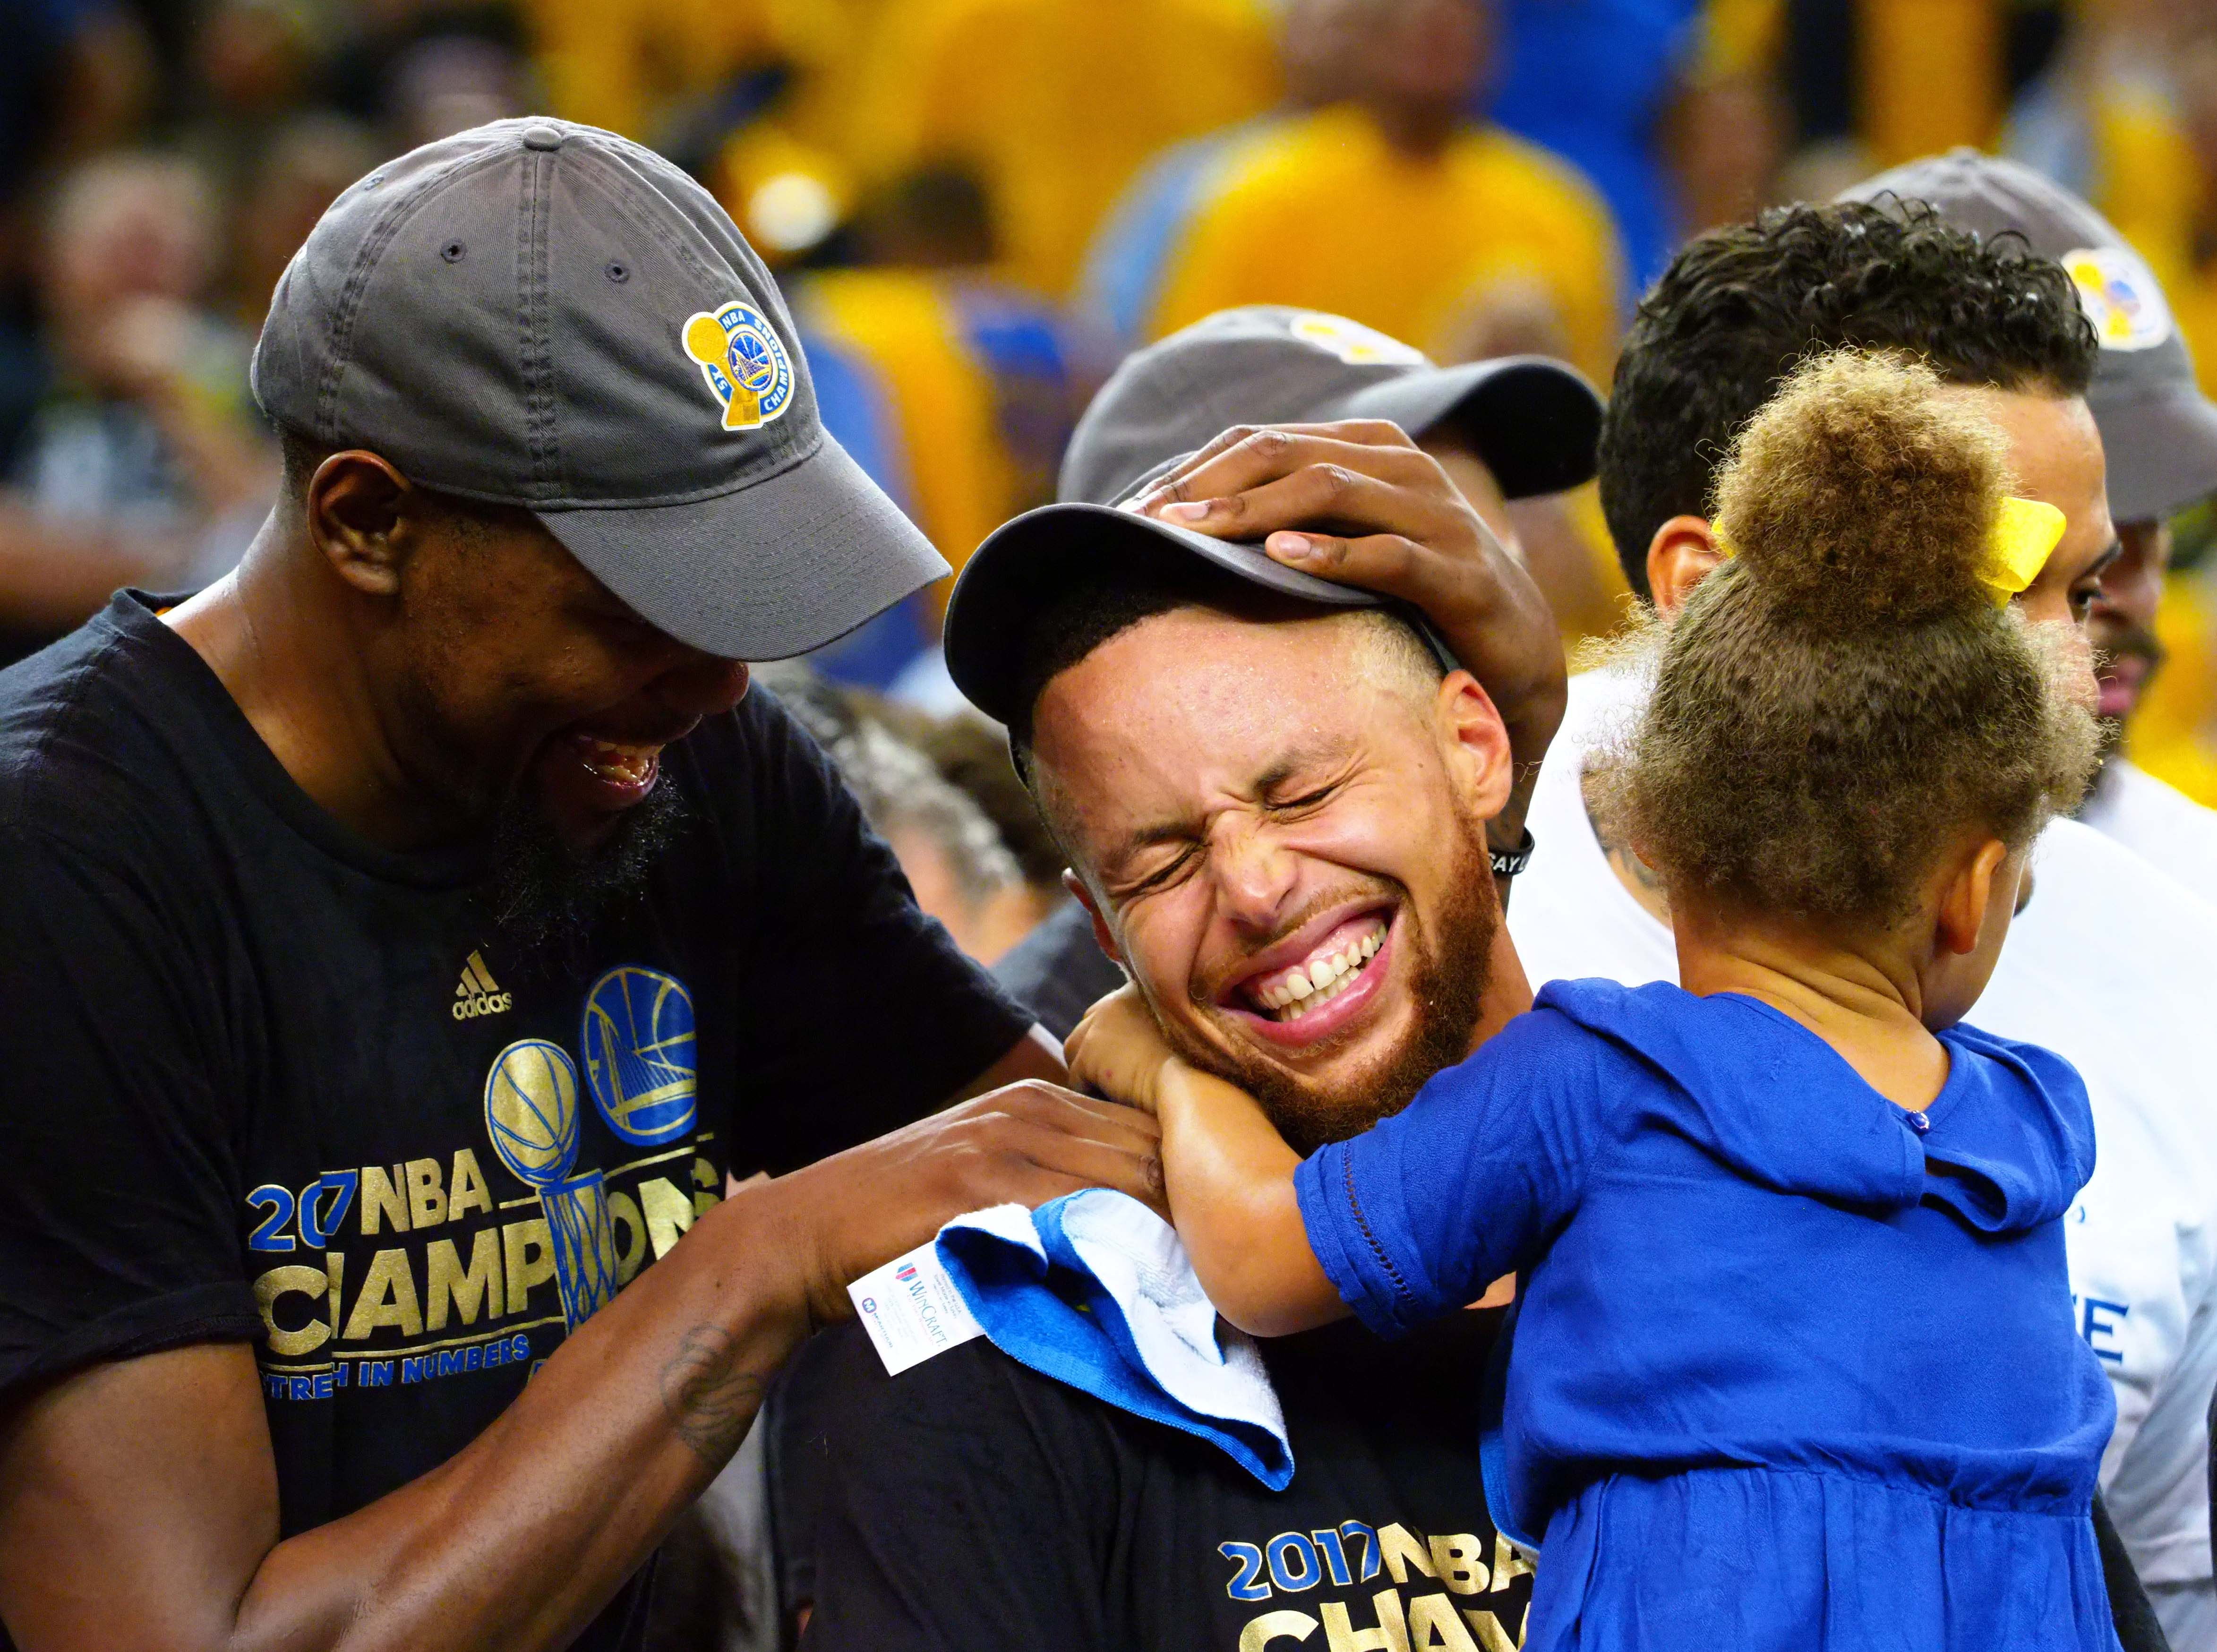 Jun 12, 2017; Oakland, CA, USA; Golden State Warriors forward Kevin Durant (35), guard Stephen Curry (30) celebrate with his caught Riley in game five of the 2017 NBA Finals at Oracle Arena. Mandatory Credit: Kelley L Cox-USA TODAY Sports